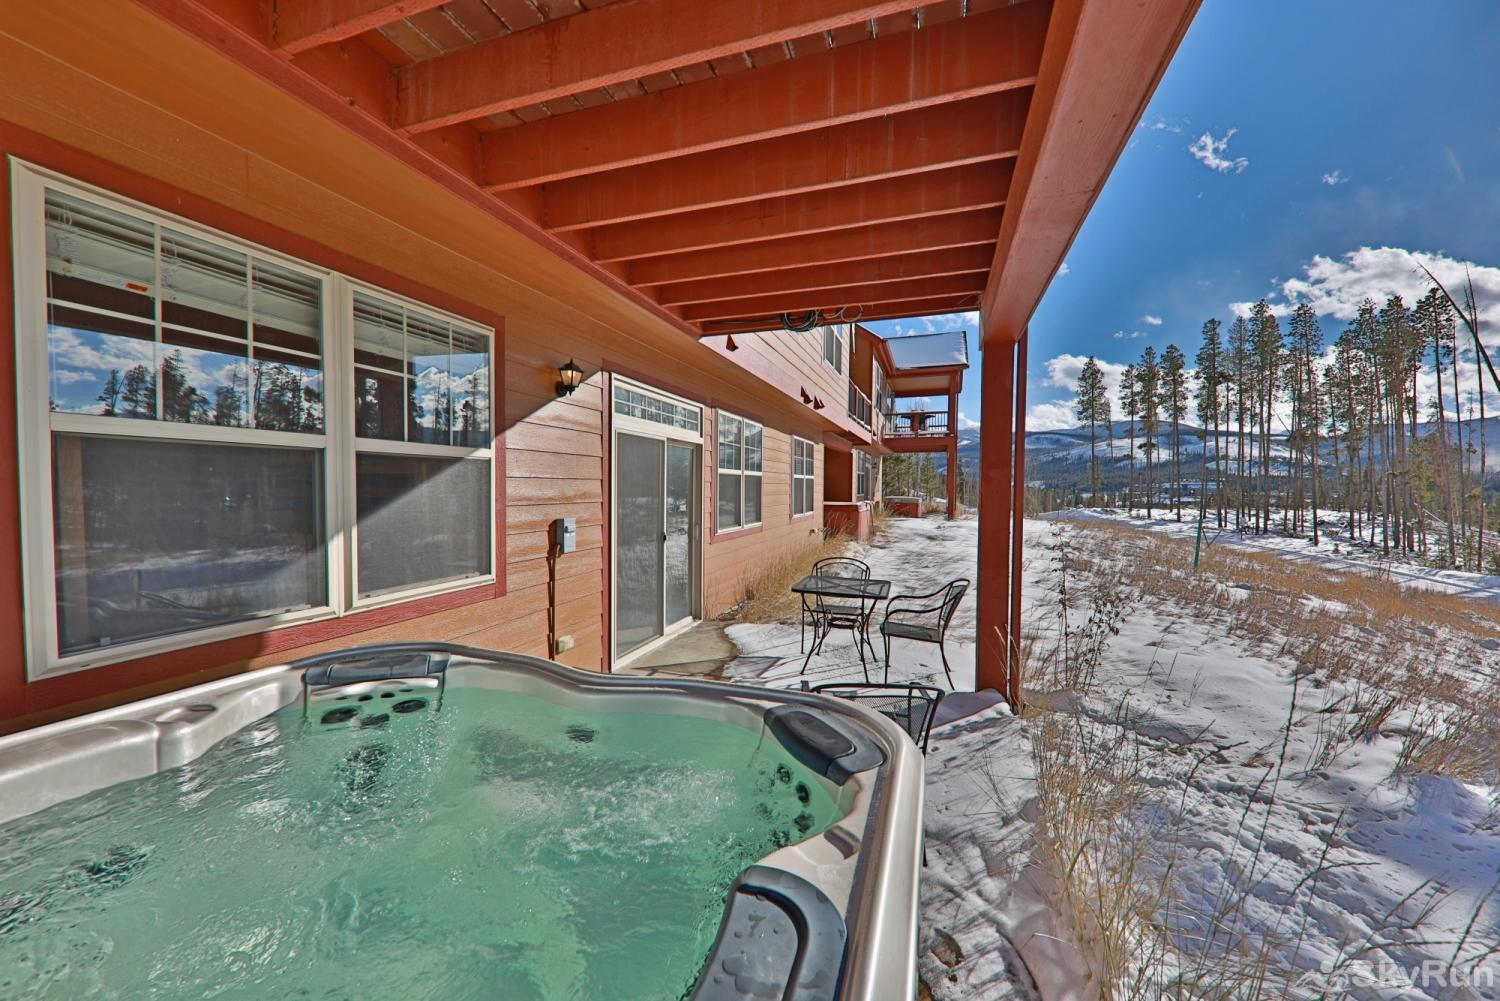 Rendezvous Discovery 3 BR Private Hot Tub with a view!